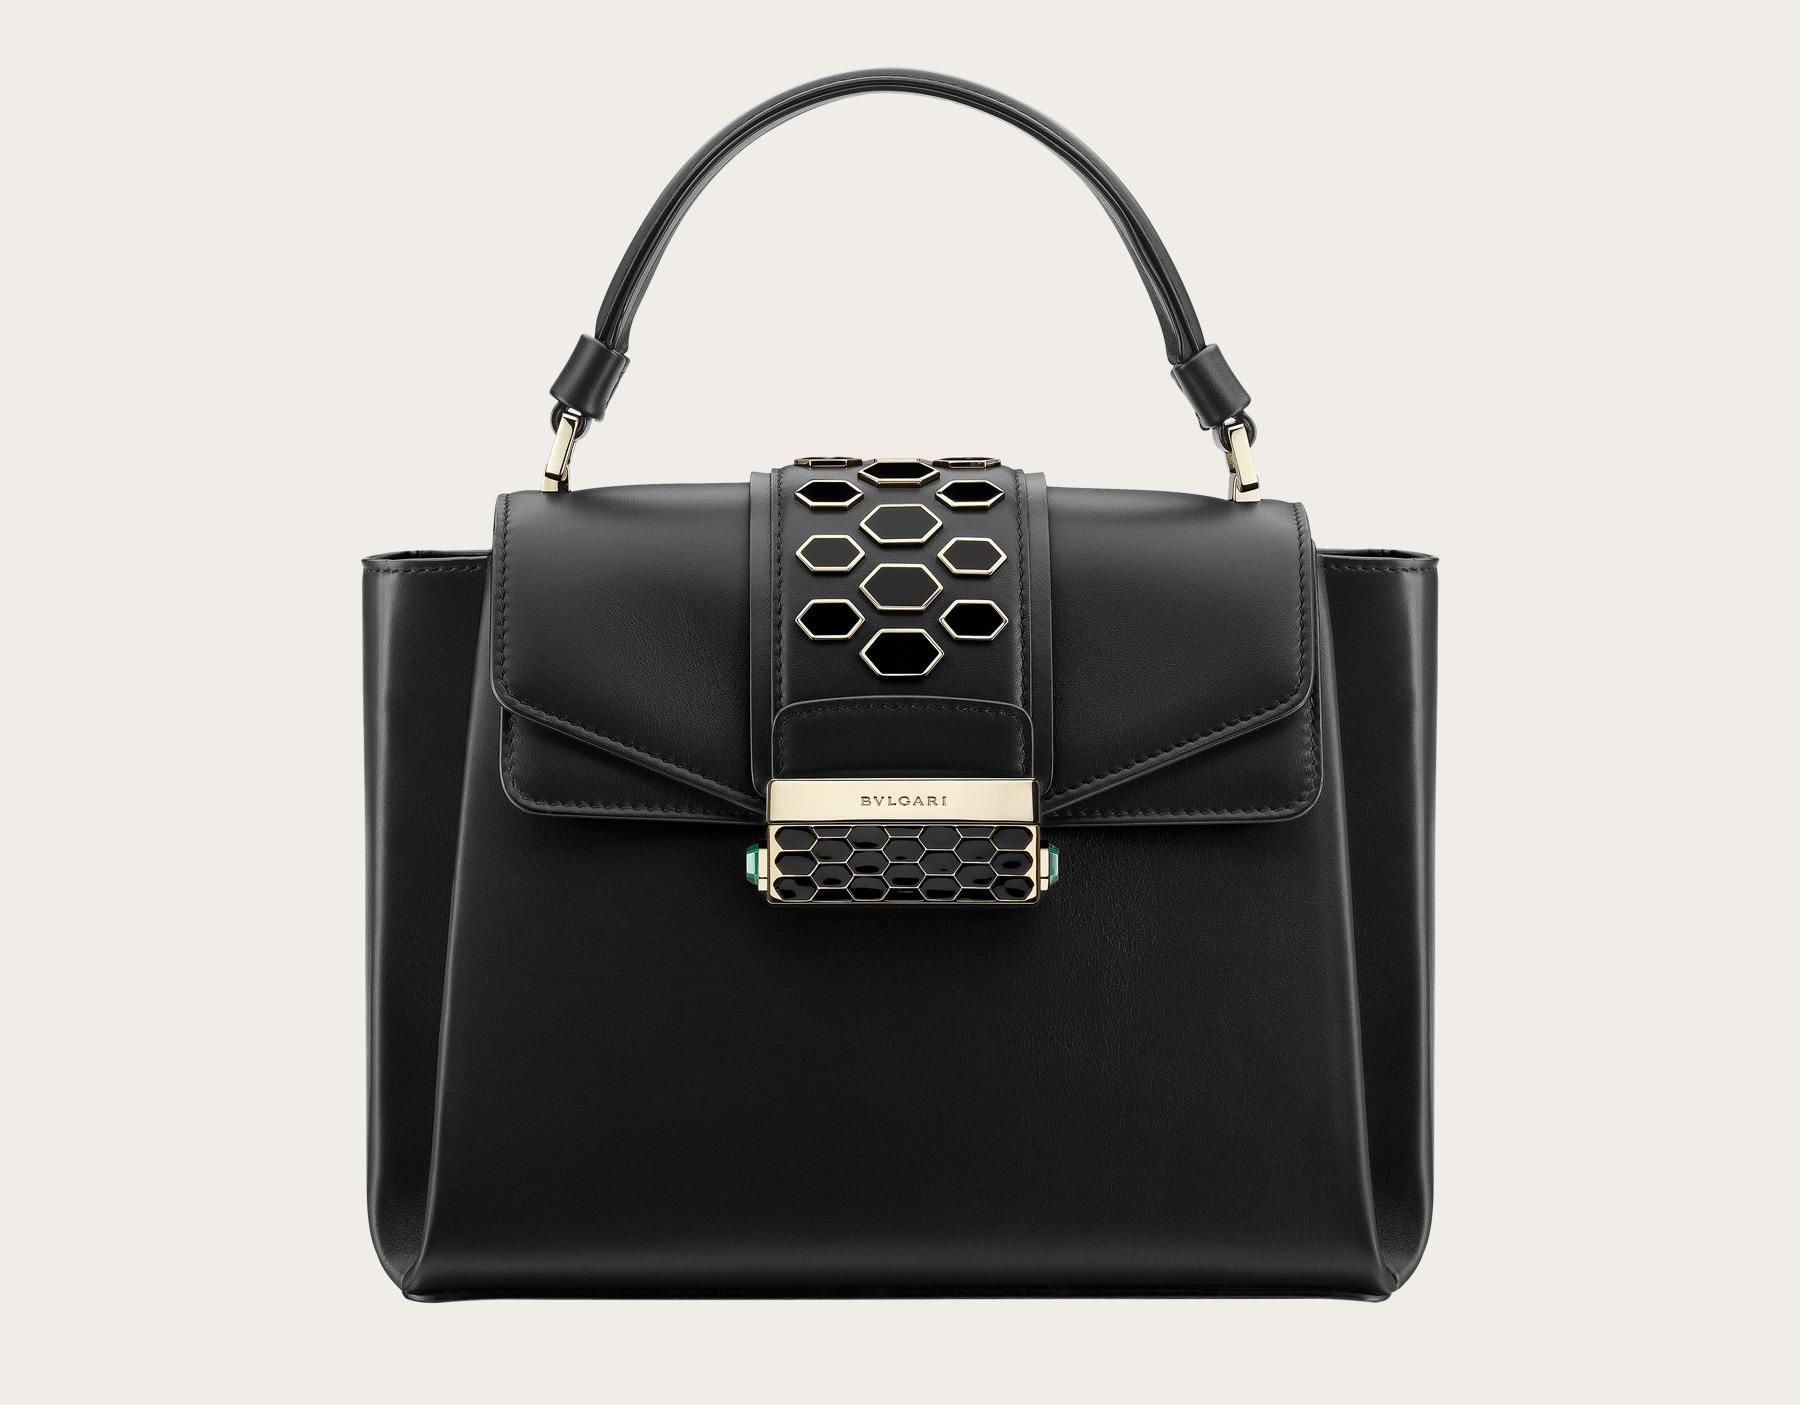 Top Handle bag Serpenti Viper 282366 - Discover BVLGARI s collections and  read more about the magnificent 534a4a50511